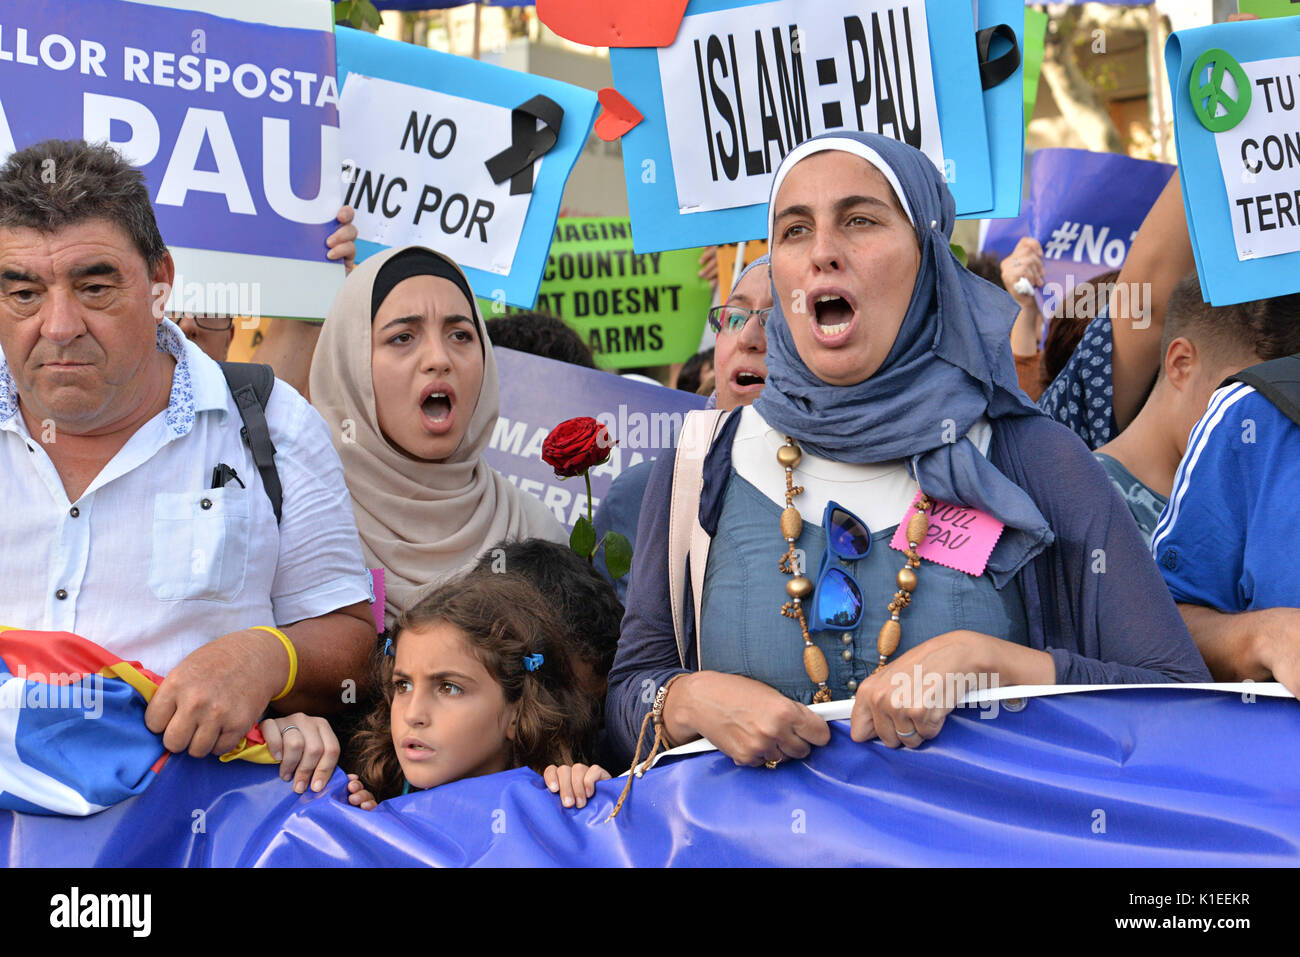 Barcelona, Spain. 26th August 2017. People protest against terrorism in a demonstration that took place in Barcelona Stock Photo